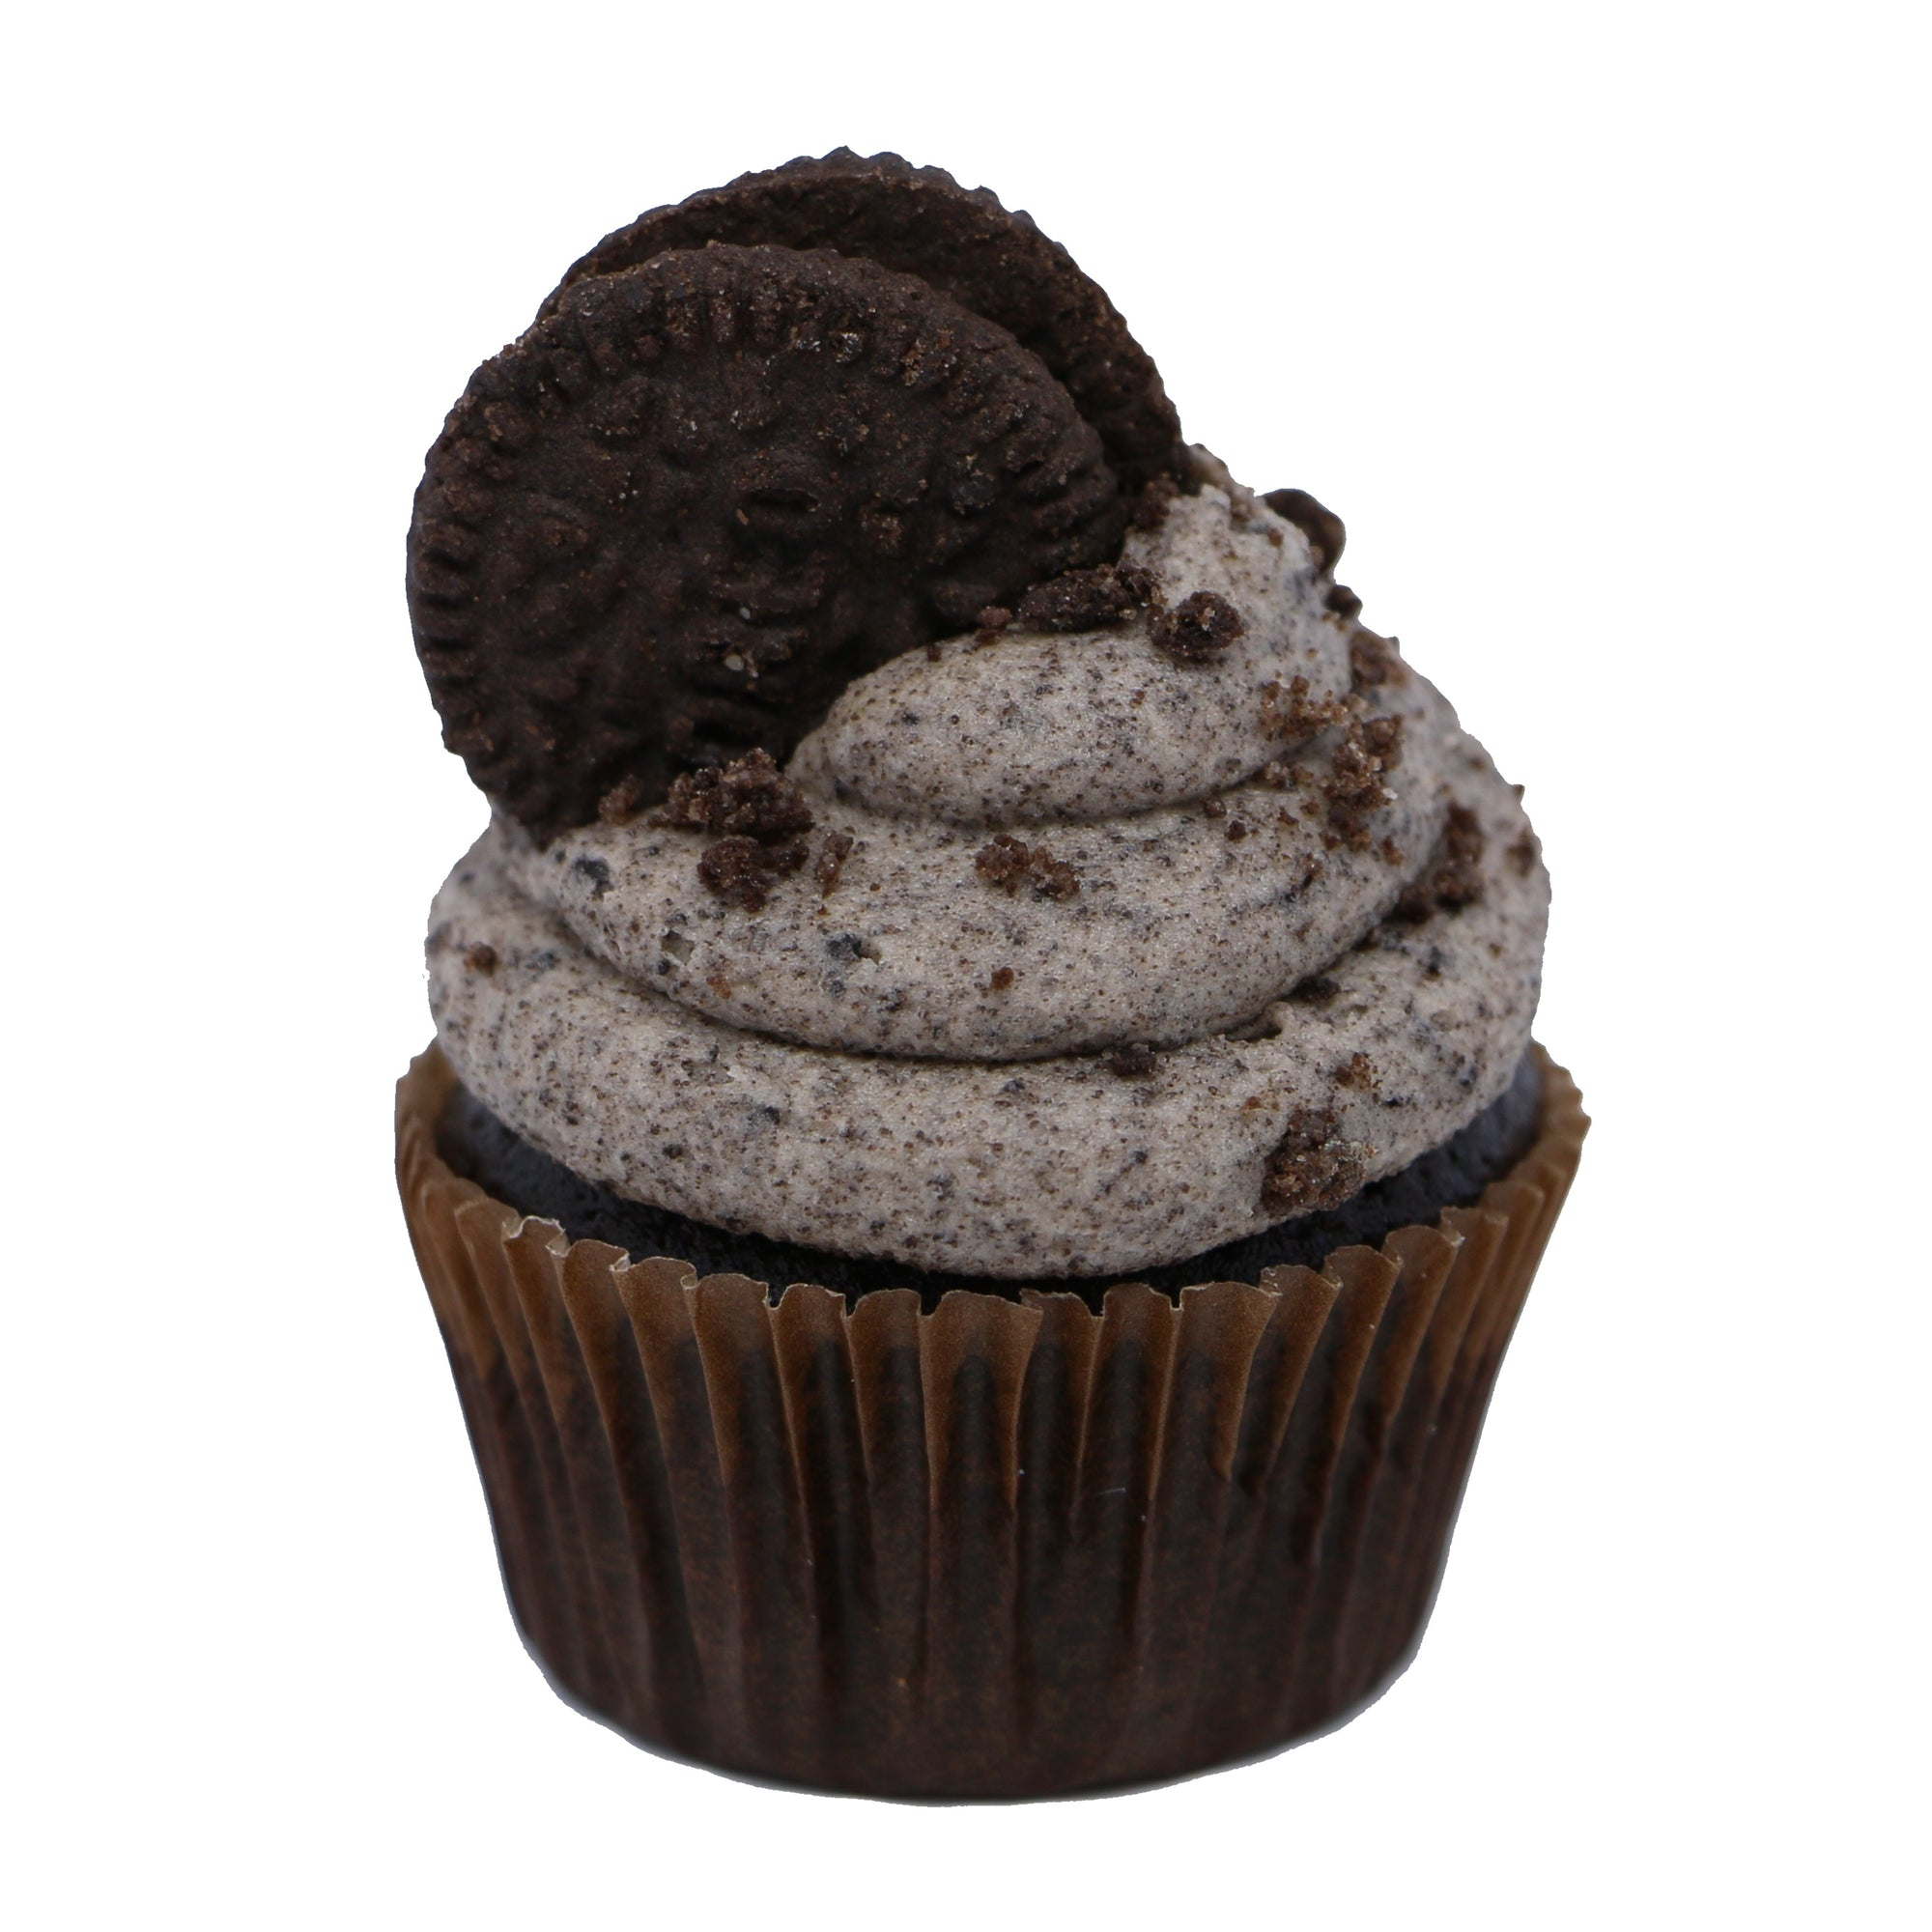 Mini Cupcake - Cookies & Cream - Treats2eat - Wedding & Birthday Party Dessert Catering Near Me